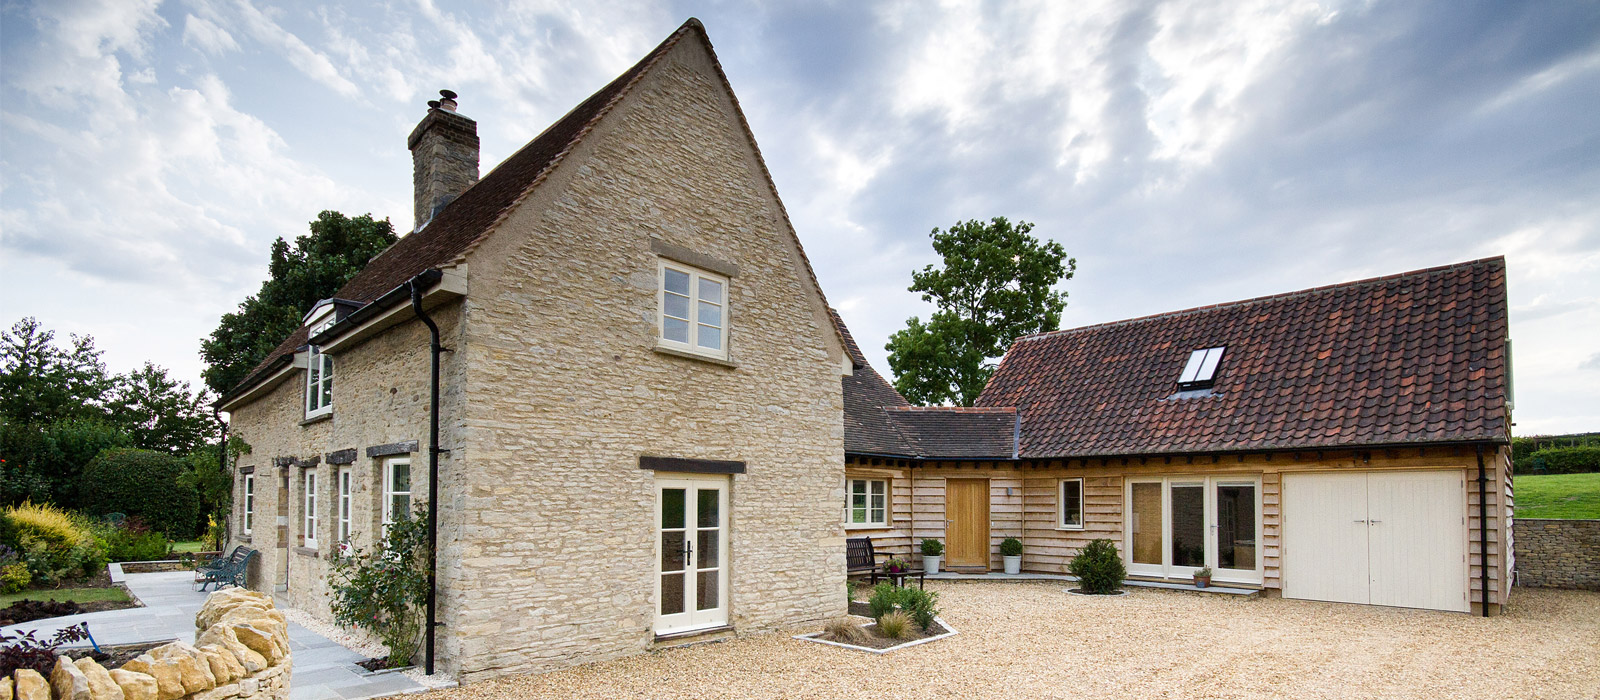 gyd-architecture | listed building extension and renovation